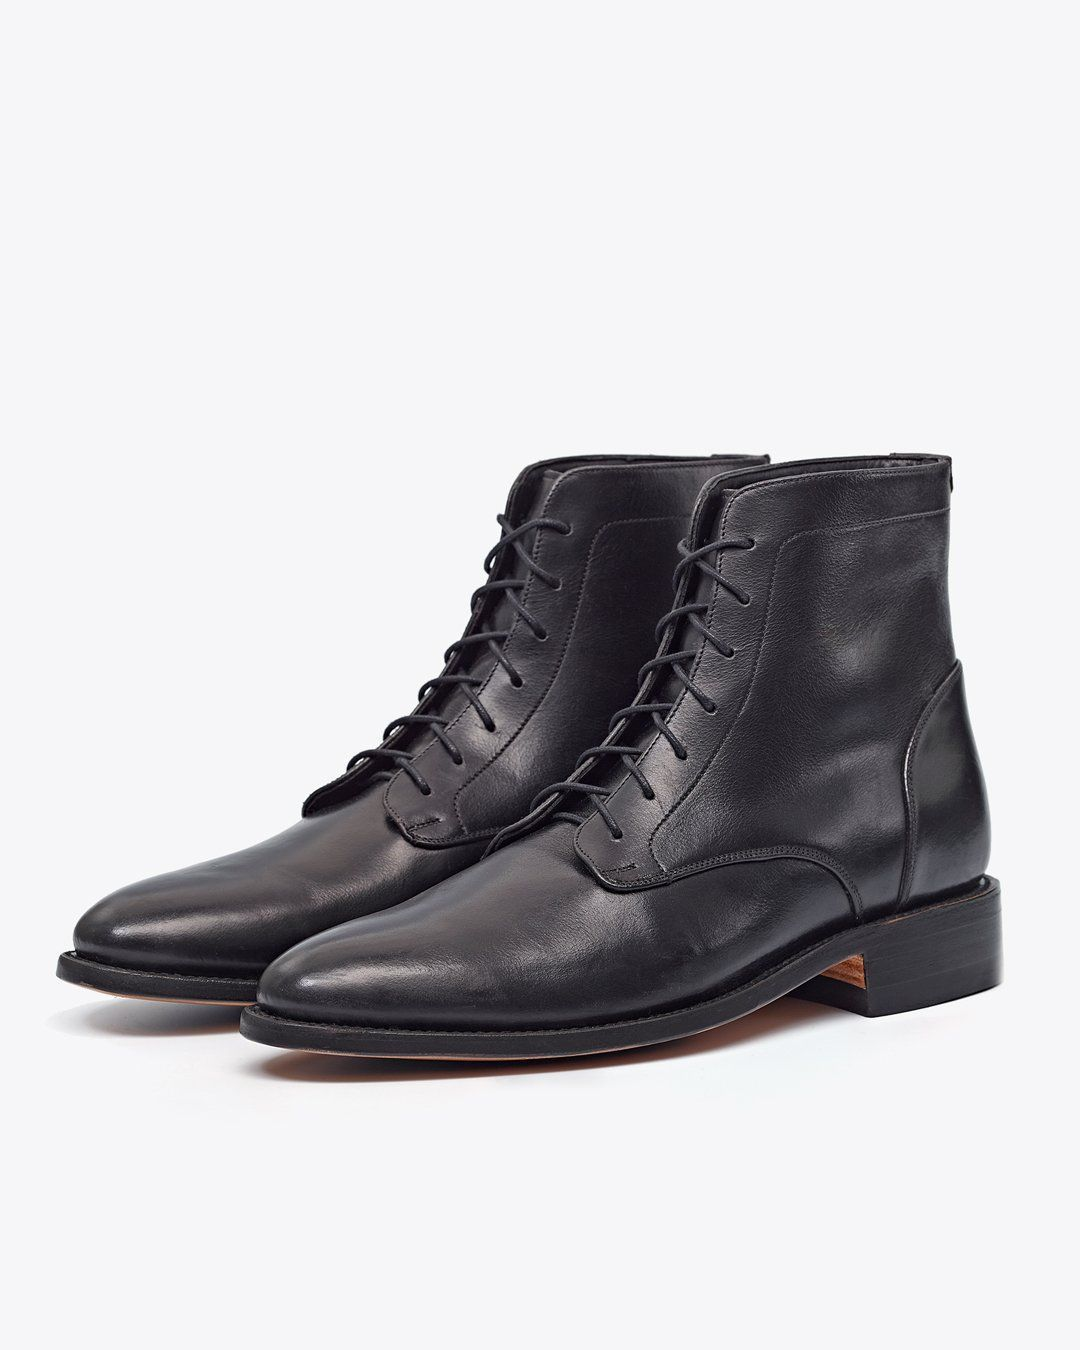 Luciano Boot Black/Black Men's Leather Boot Nisolo